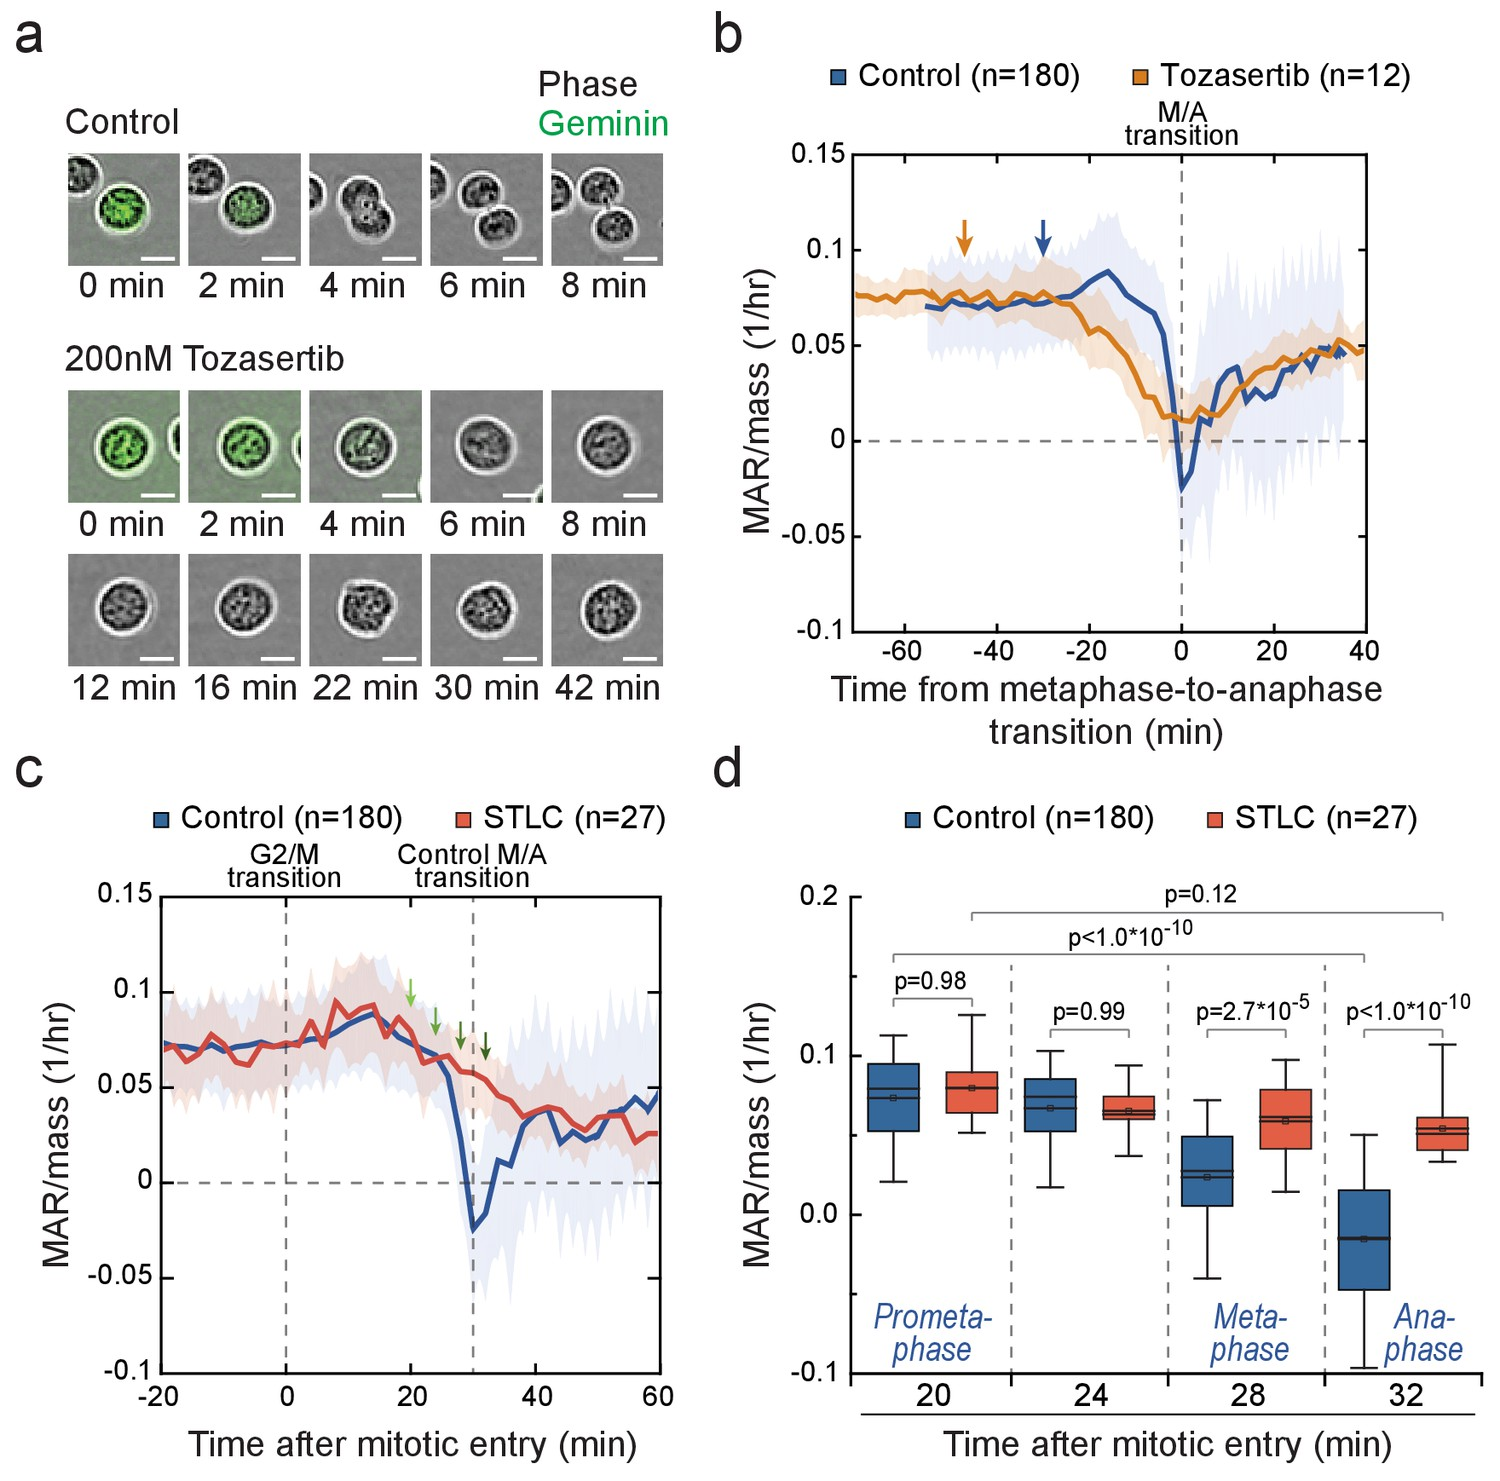 Figures and data in Mammalian cell growth dynamics in